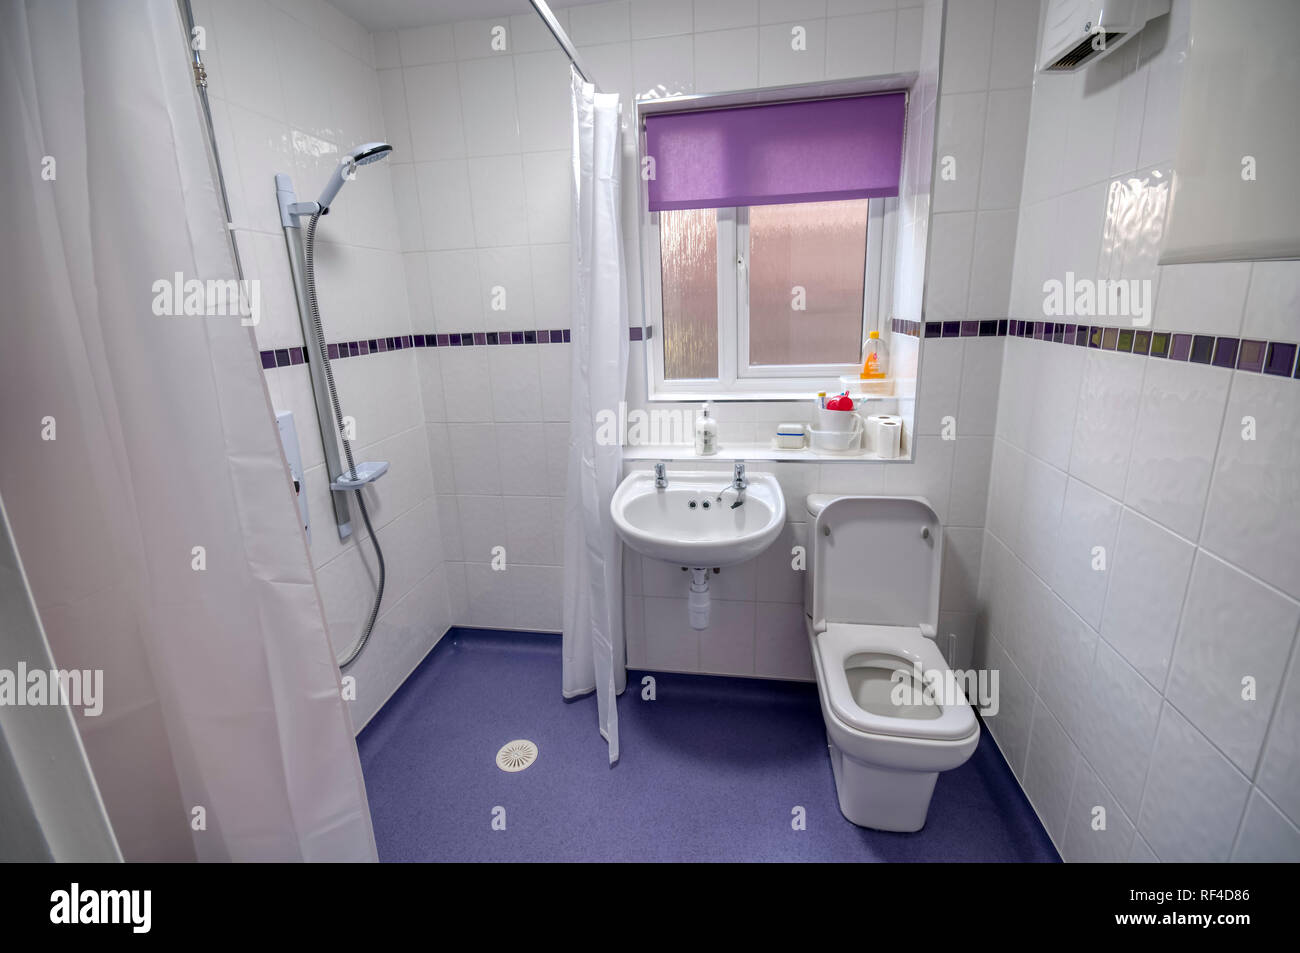 A wet shower room adaptation of a bathroom for use by a disabled or elderly person. - Stock Image